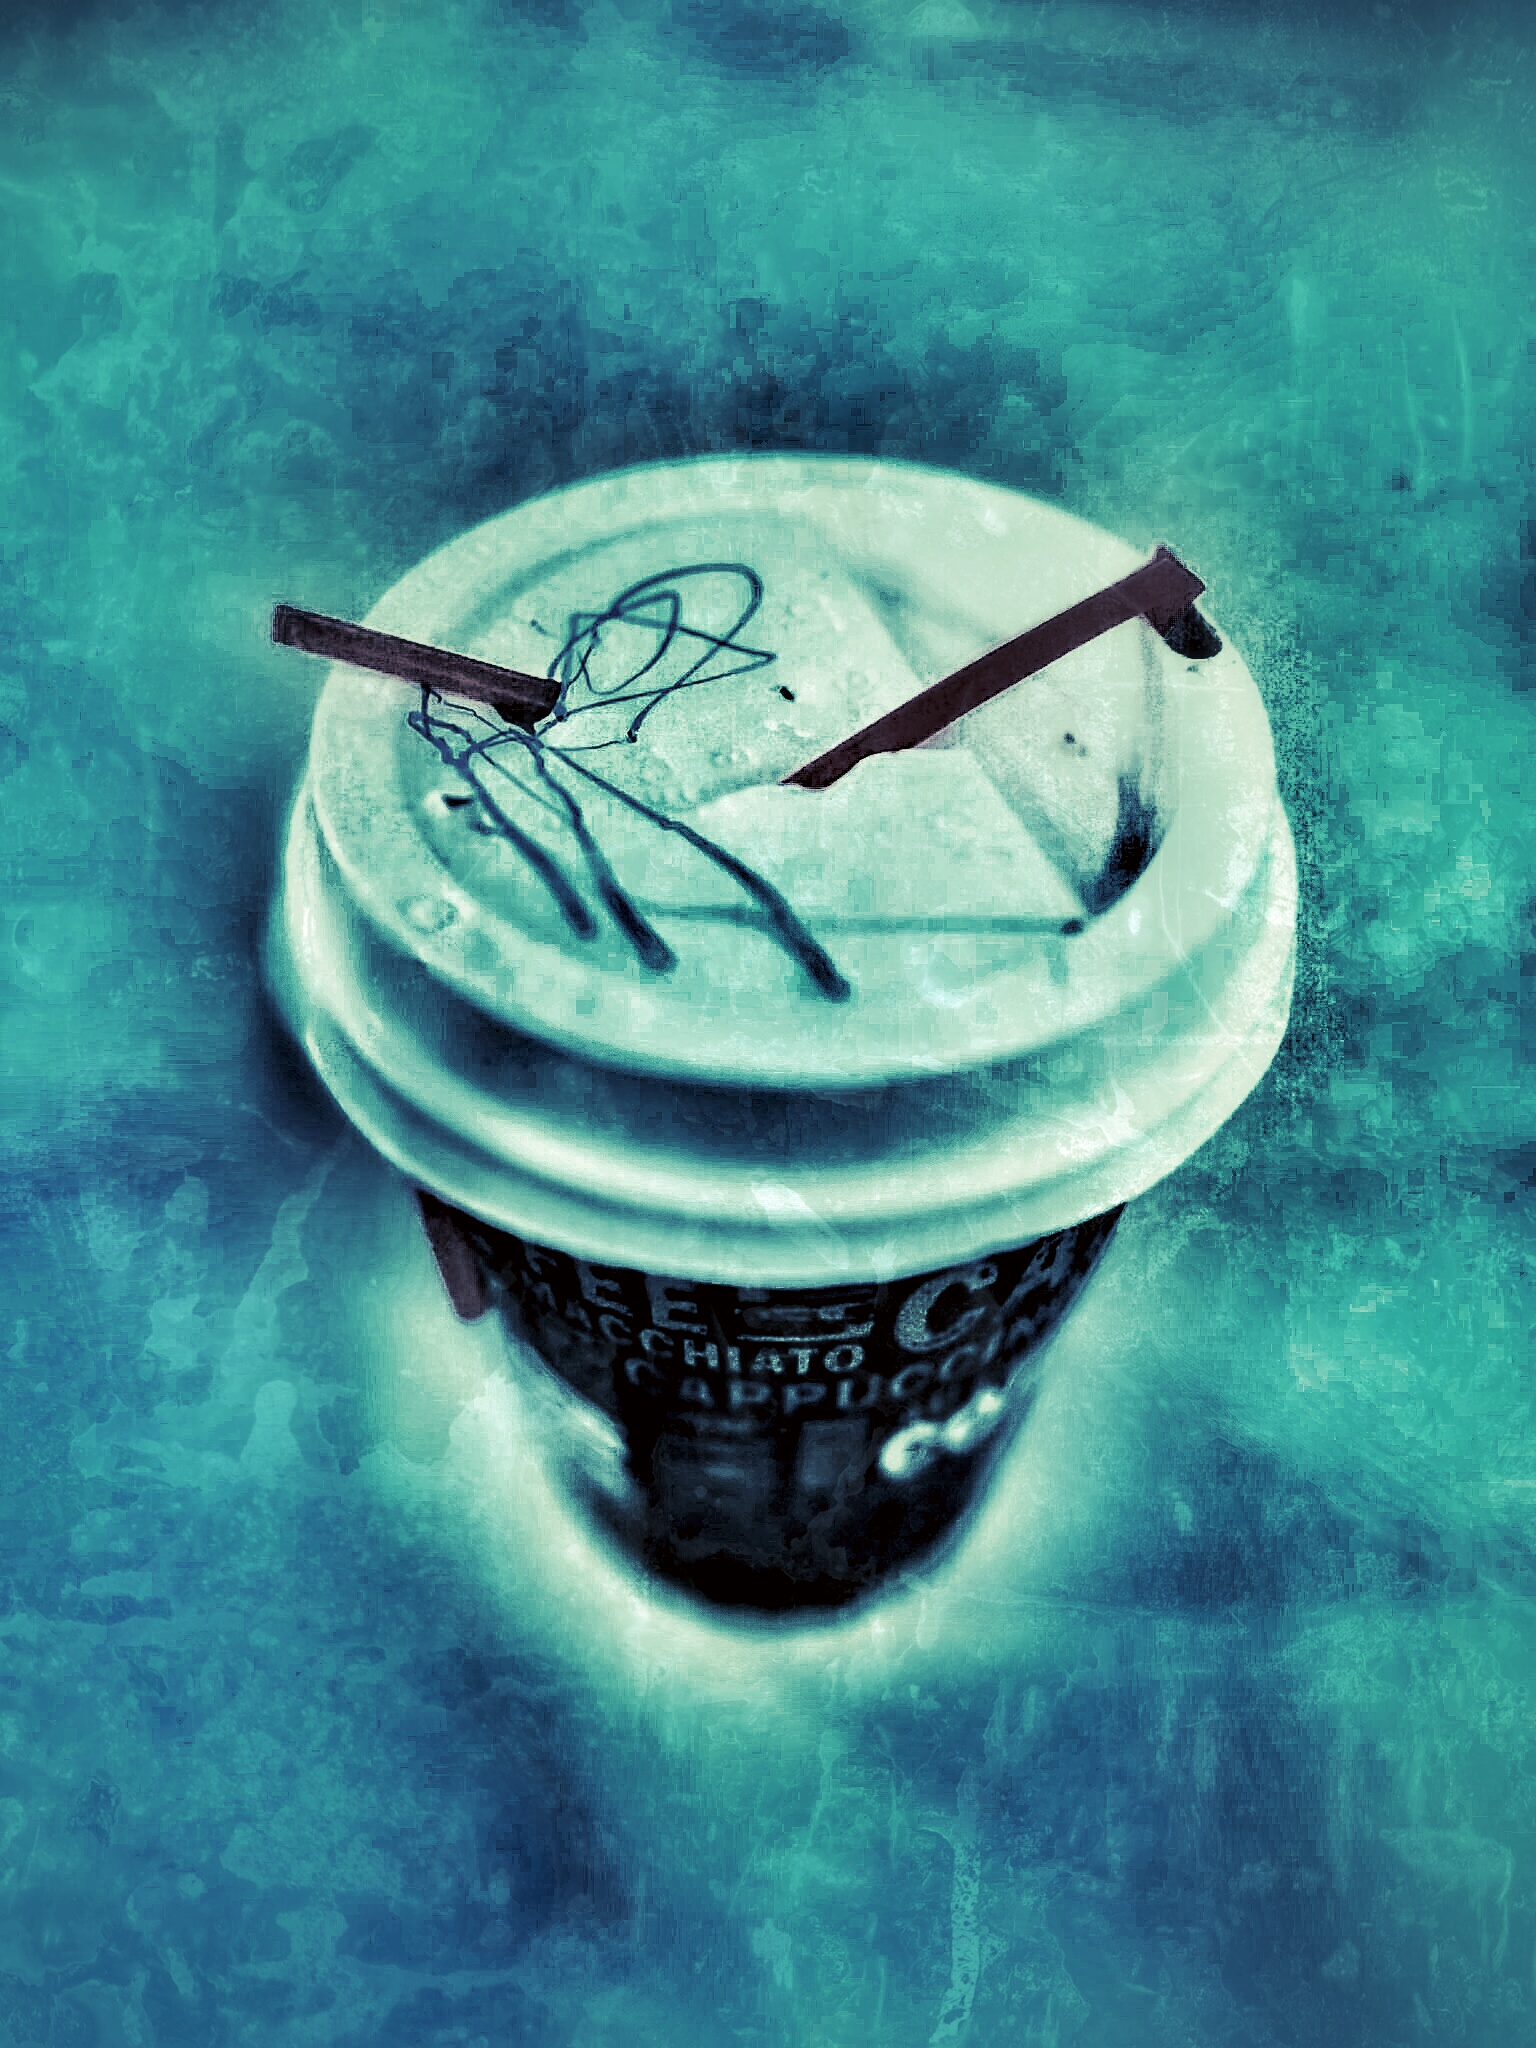 Artistic image of a paper coffee cup with markings on the top. A plastic straw pierces through the cap.